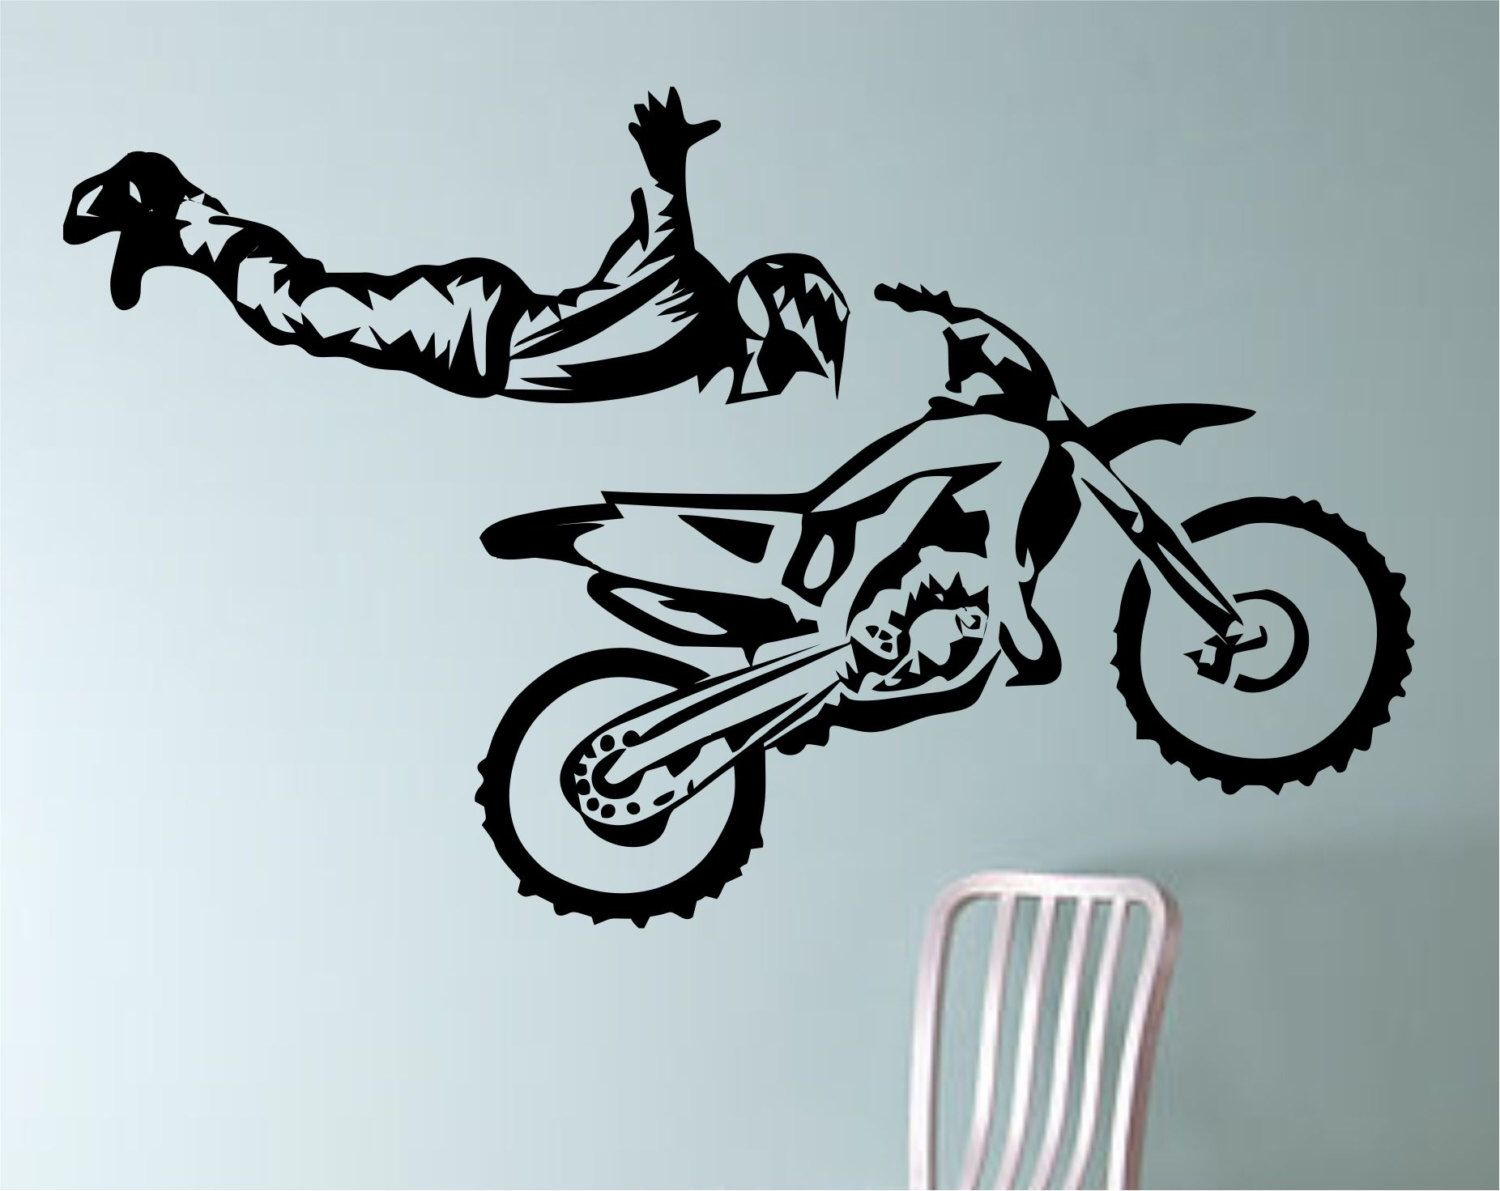 Dirt bike biker superman trick motorcycle vinyl wall decal for Dirt bike wall mural